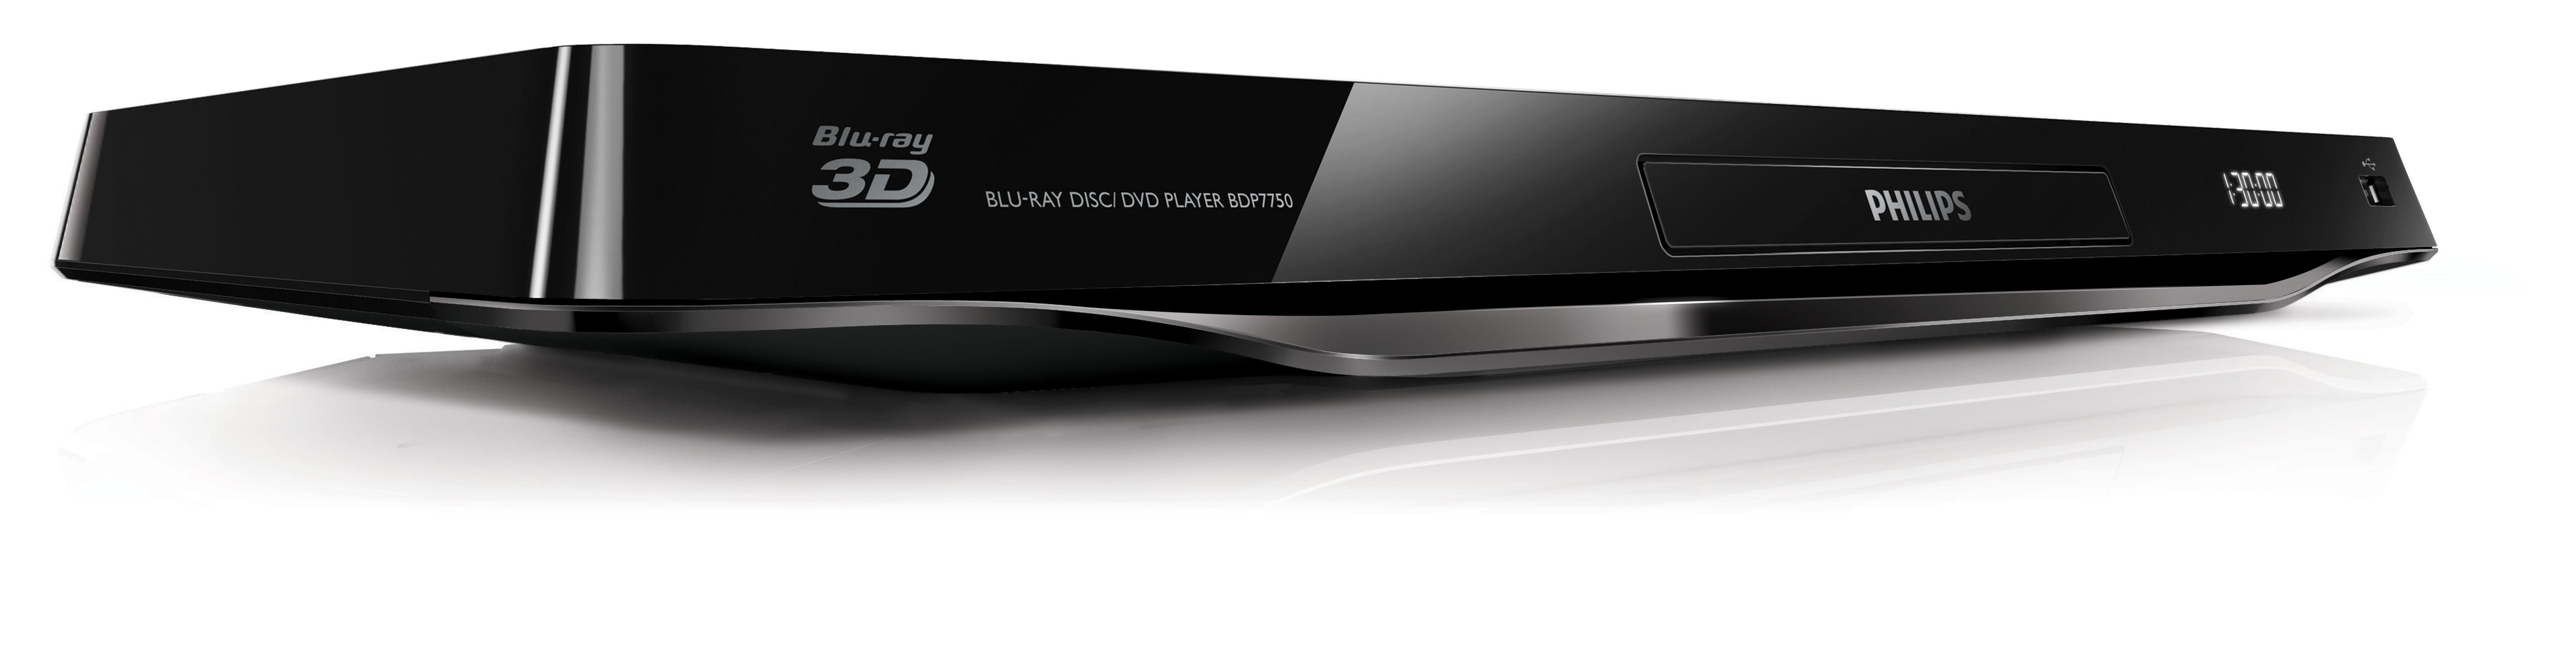 philips bdp7750 12 3d blu ray player mit 4k ultra hd skalierung wifi smart tv miracast. Black Bedroom Furniture Sets. Home Design Ideas